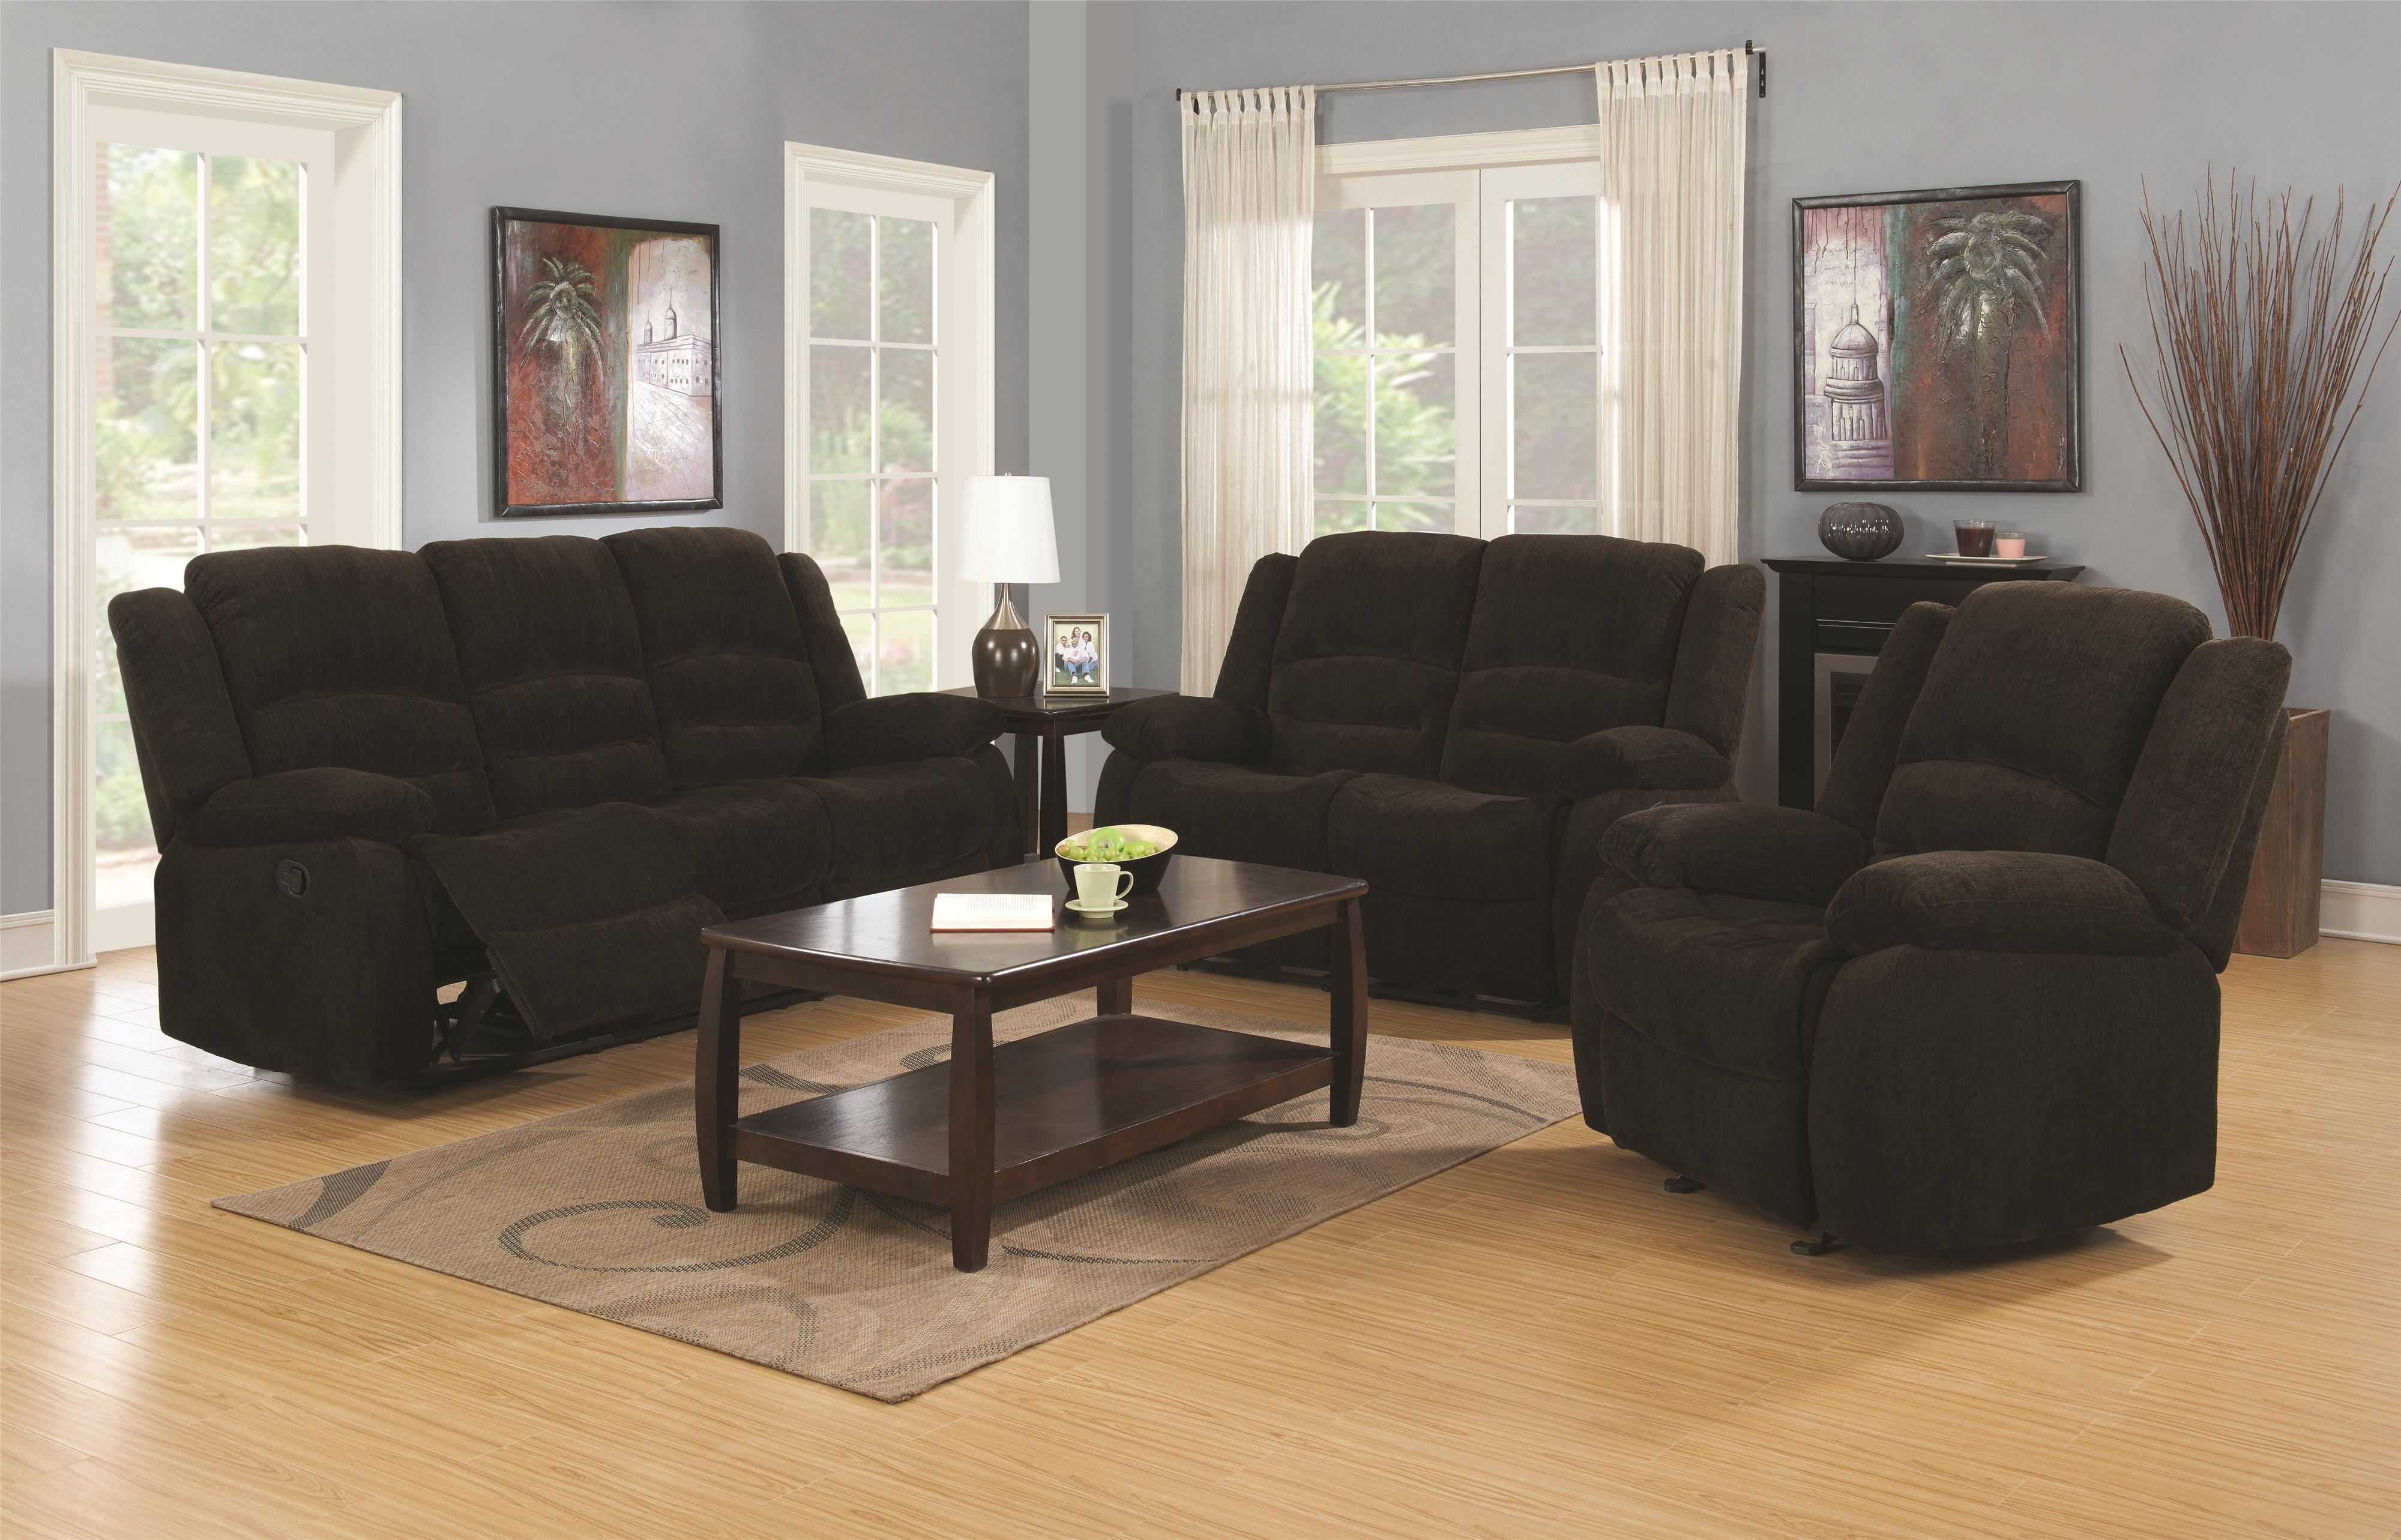 Brown leather living room furniture - Brown Leather Living Room Furniture 43